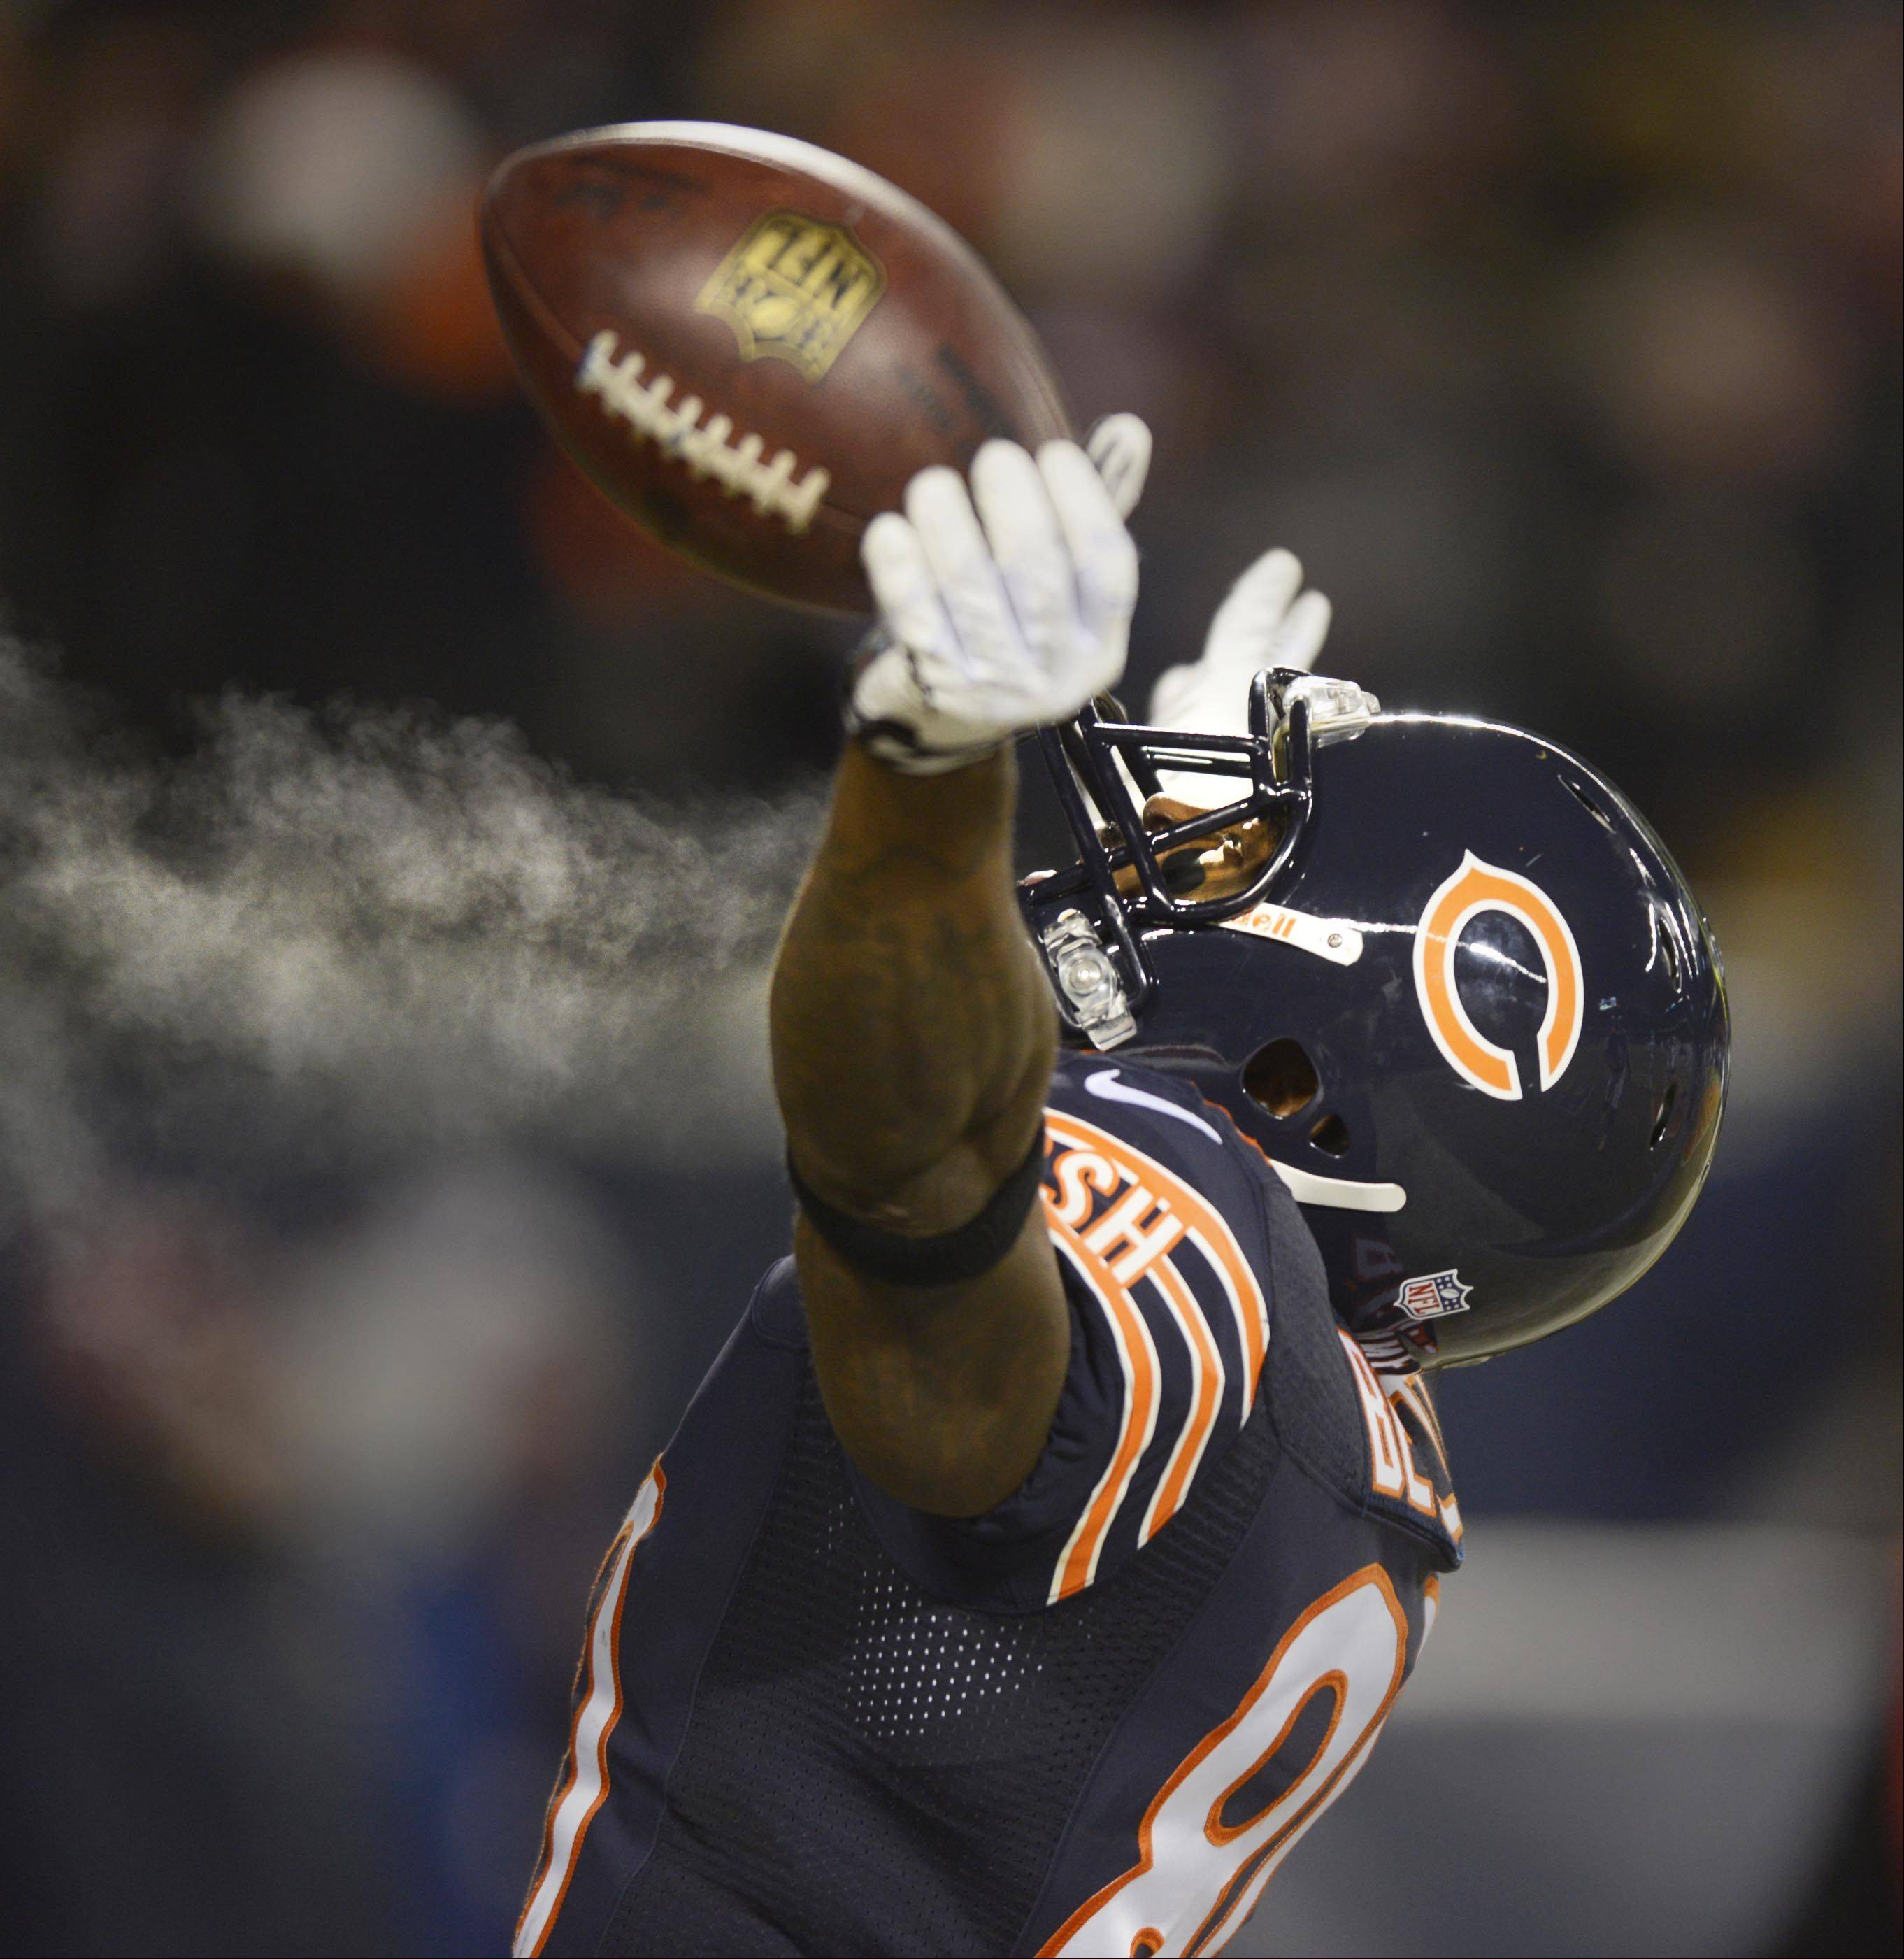 Chicago Bears wide receiver Earl Bennett celebrates his first quarter touchdown against the Dallas Cowboys Monday at Soldier Field in Chicago. The Bears would go on to win 45-28.